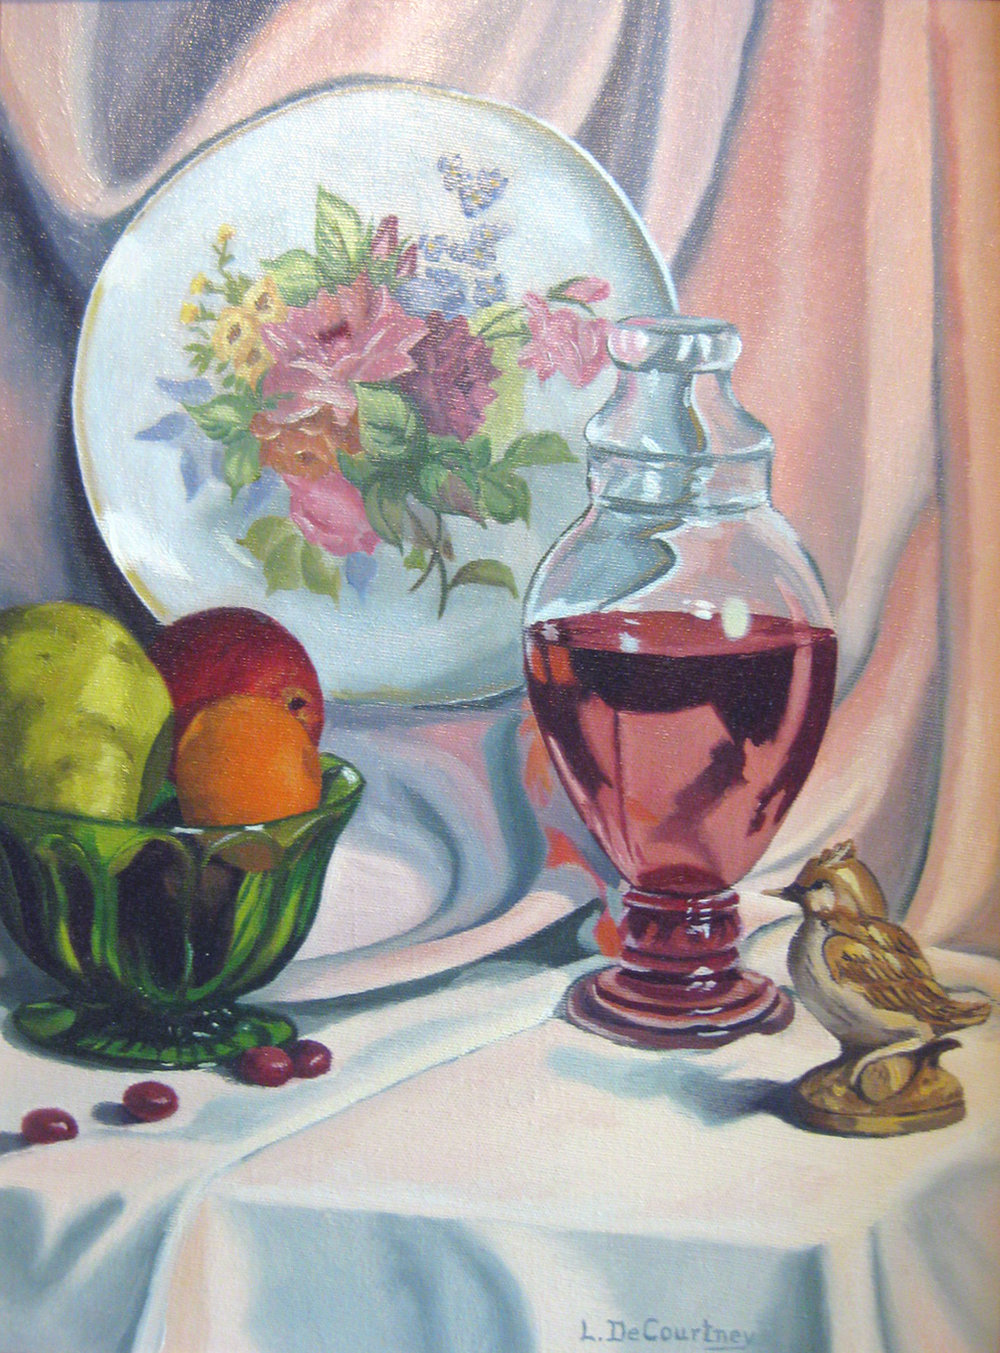 DeCourtney, L - Still Life